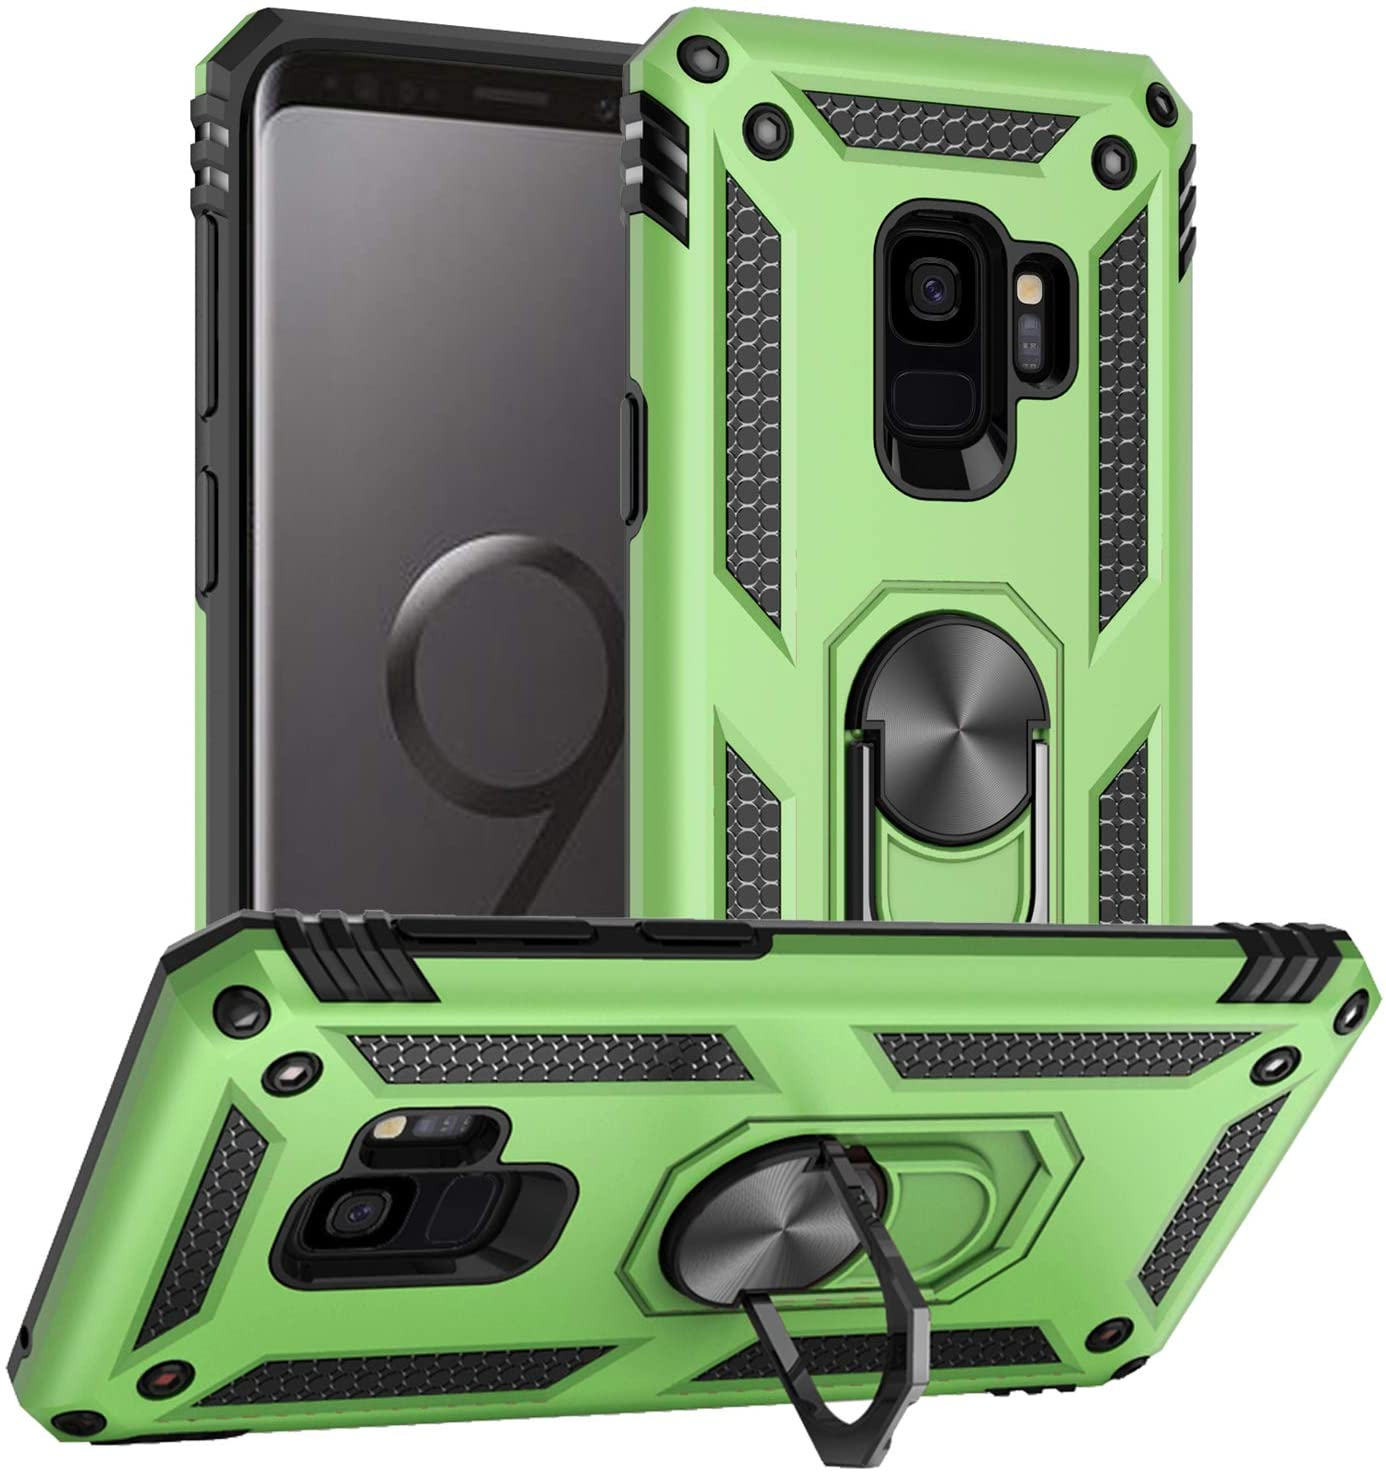 Pegoo Galaxy S9 Case, Shockprooof Impact Resistant Hybrid Heavy Duty Dual Layer Armor Hard Plastic and Soft TPU with a Kickstand Bumper Protective Cover Case for Galaxy S9 (Light Green)